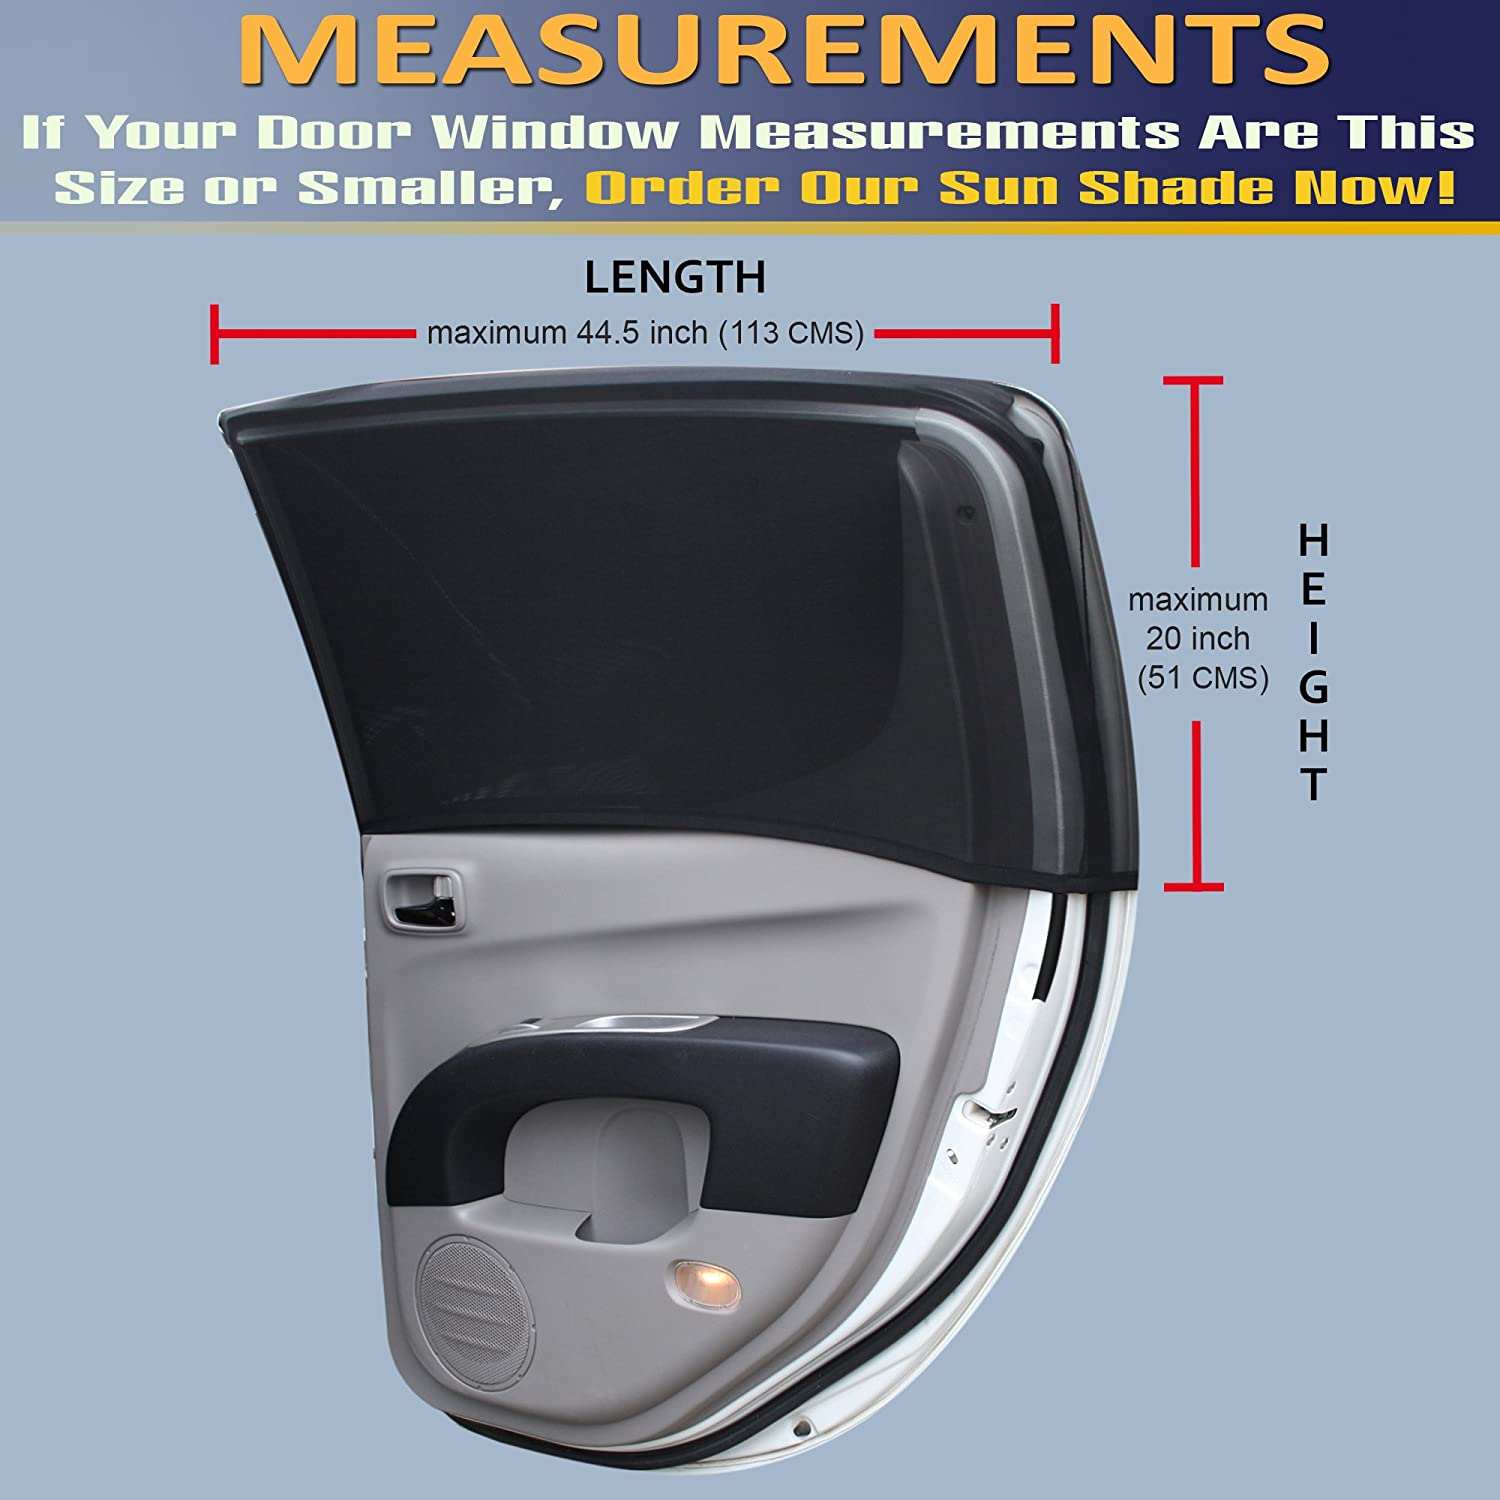 achieve door interior a for services no use doors techniques and of ensuring experience huntsmiths wealth protector the our left untouched detailing treatments your cranny we best result possible car to is